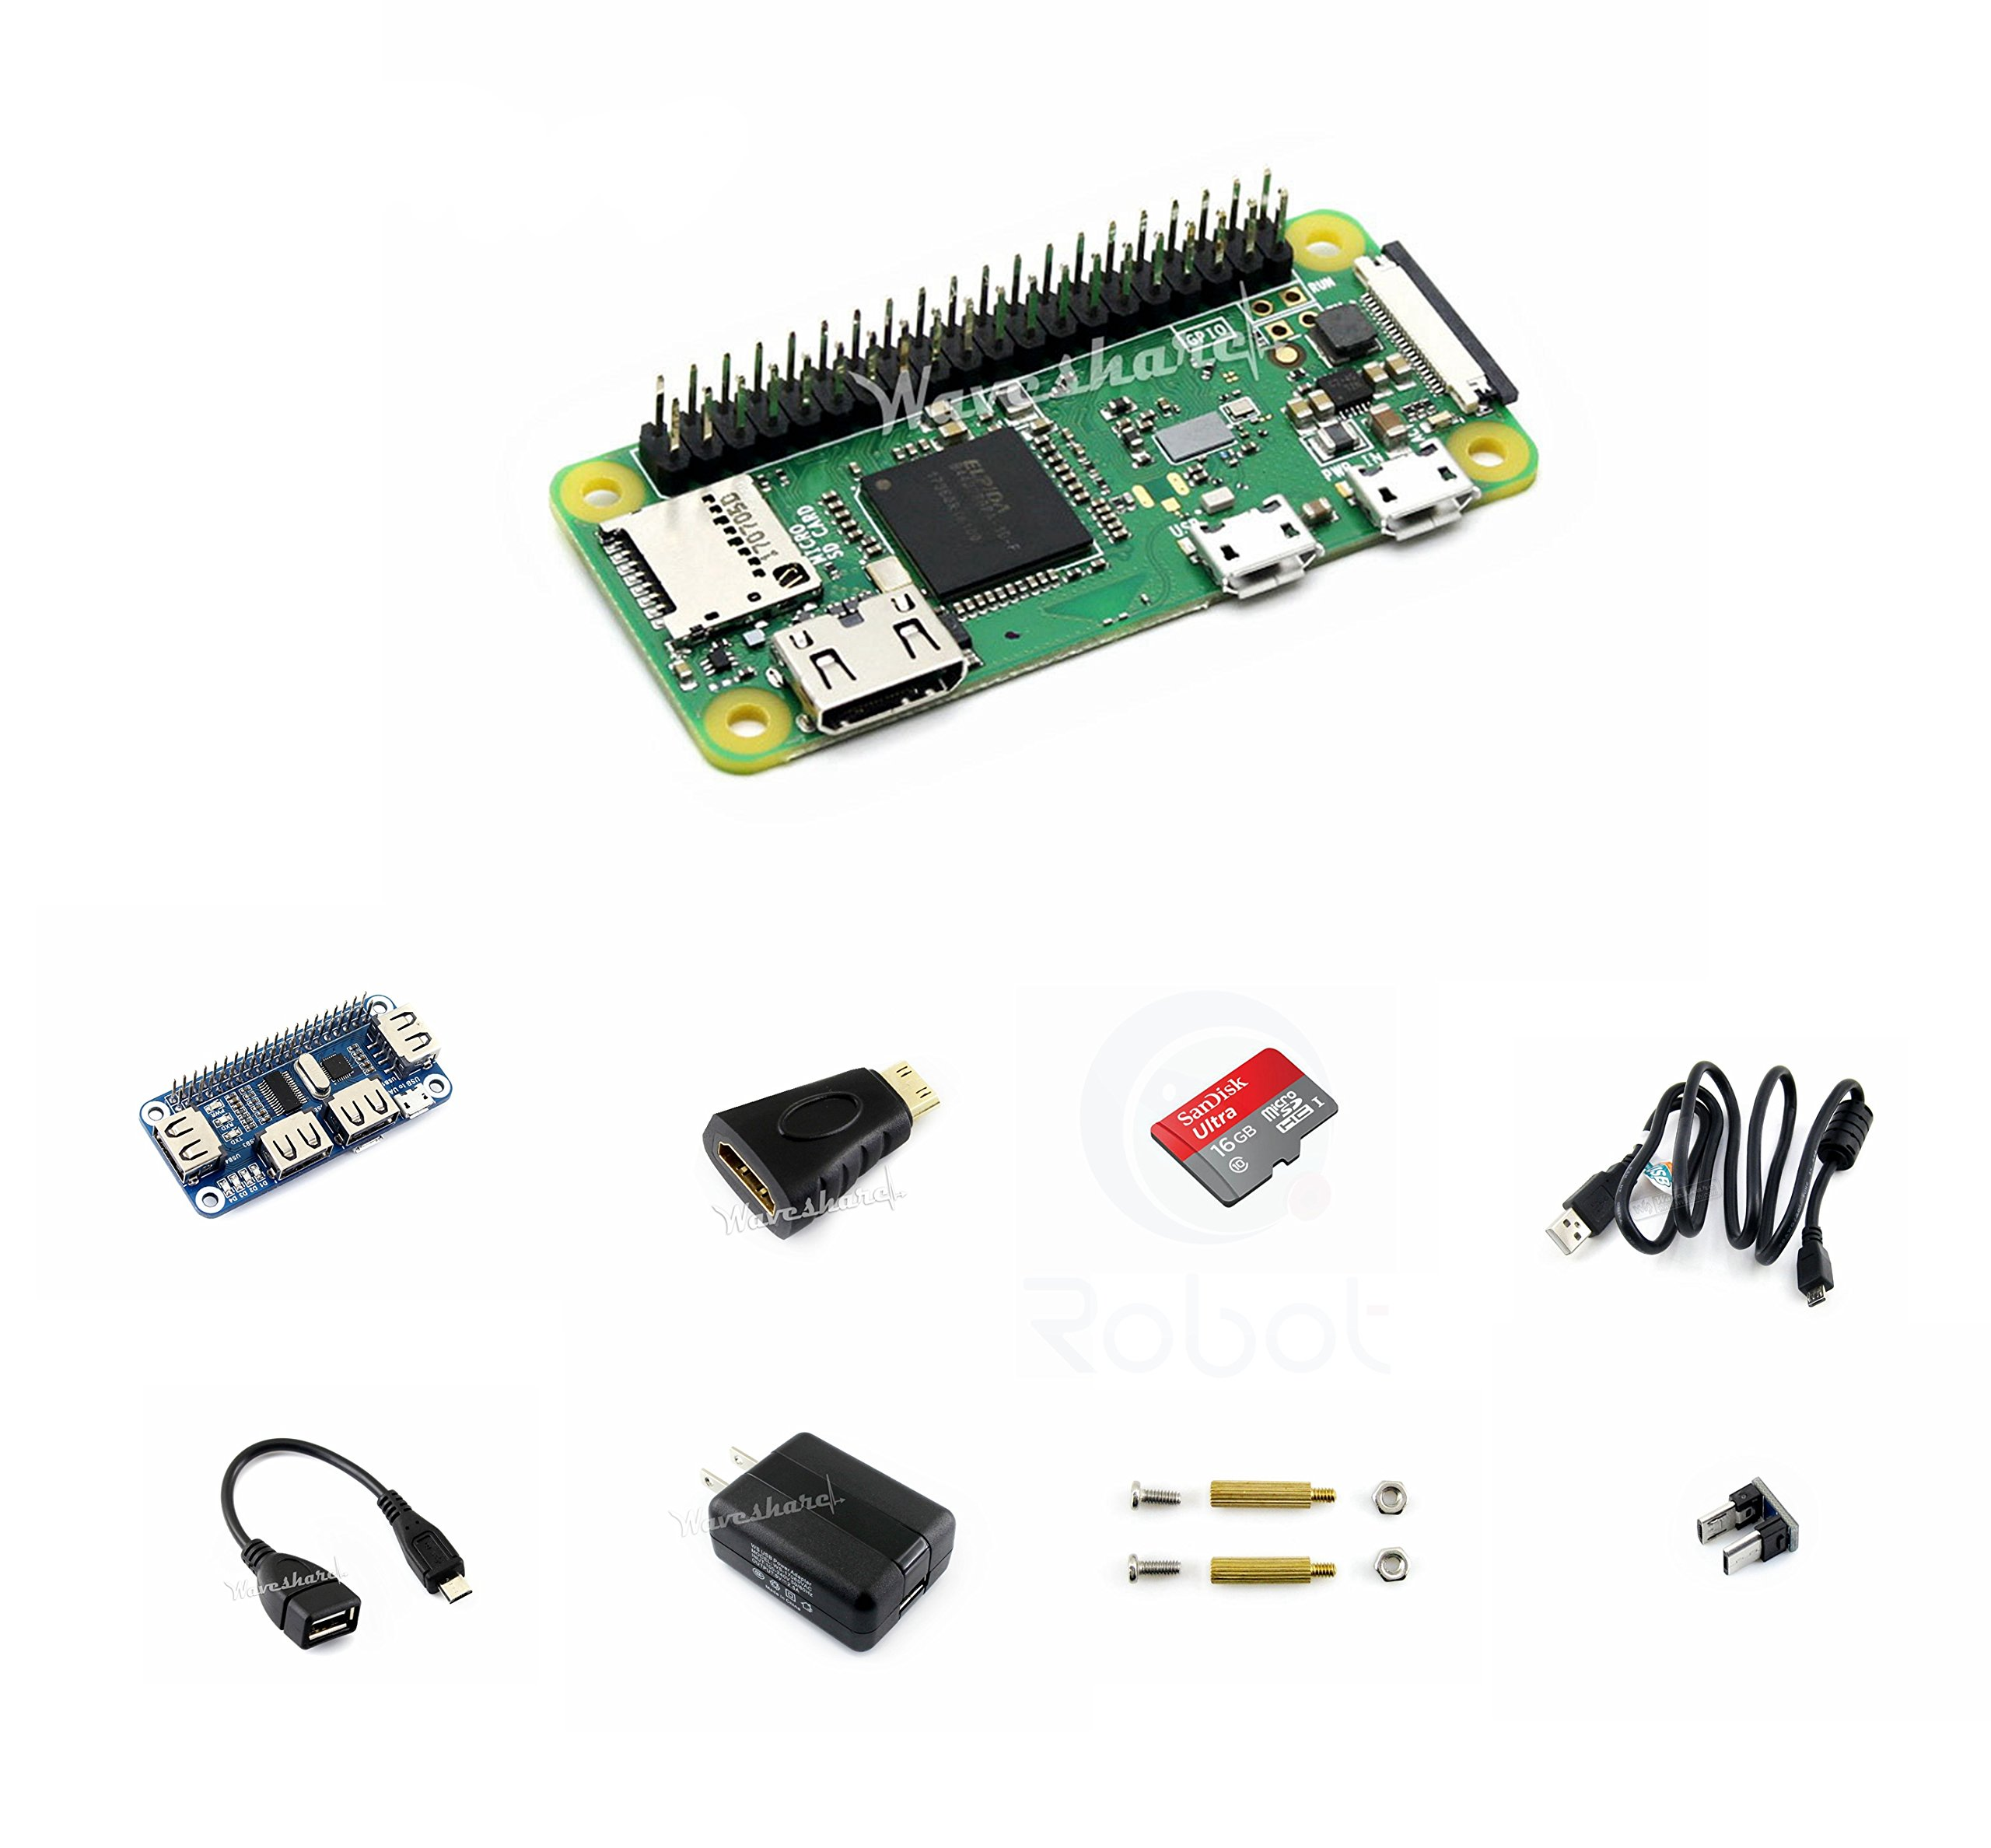 CQRobot Kit D with USB HUB HAT for Raspberry Pi Zero WH, Includes: Raspberry Pi Zero WH (Built-in WiFi), Micro SD Card, Power Adapter, Mini HDMI to HDMI Adapter, Micro USB OTG Cable and Components.